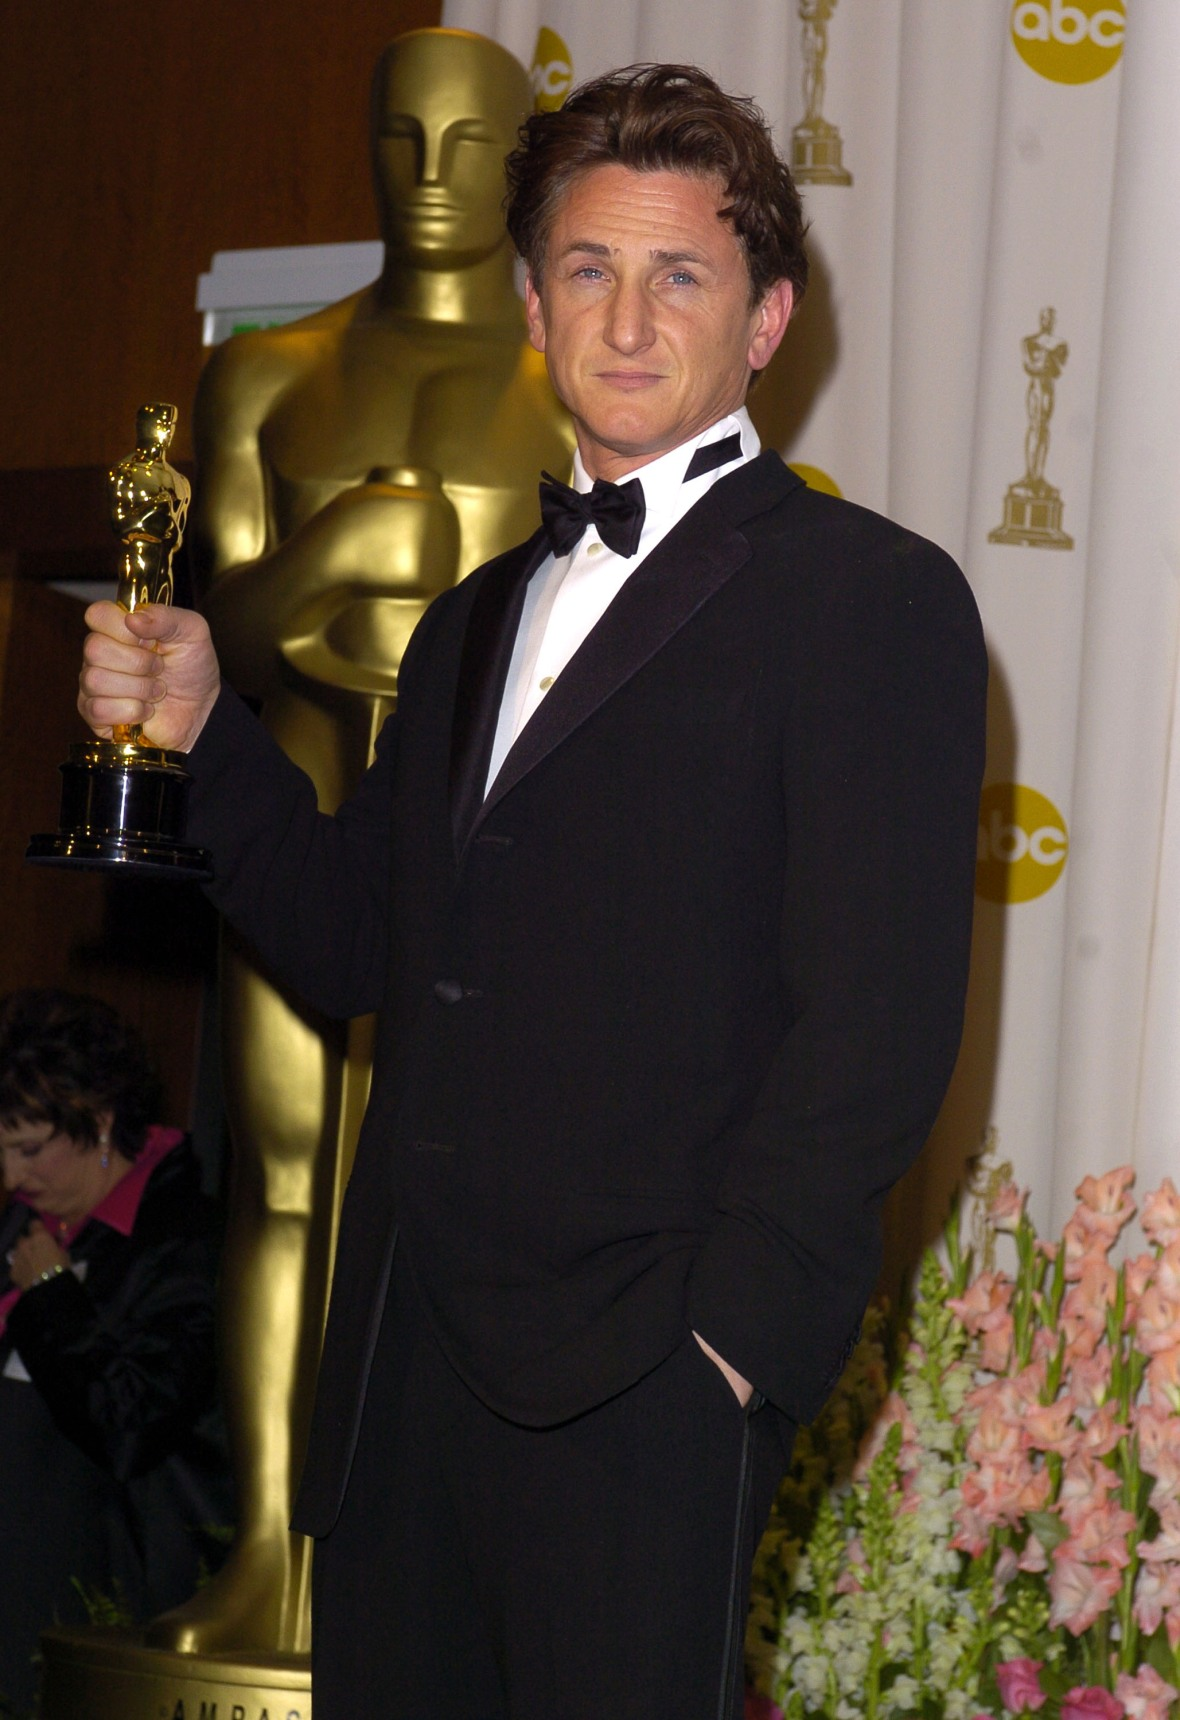 sean penn oscar getty images